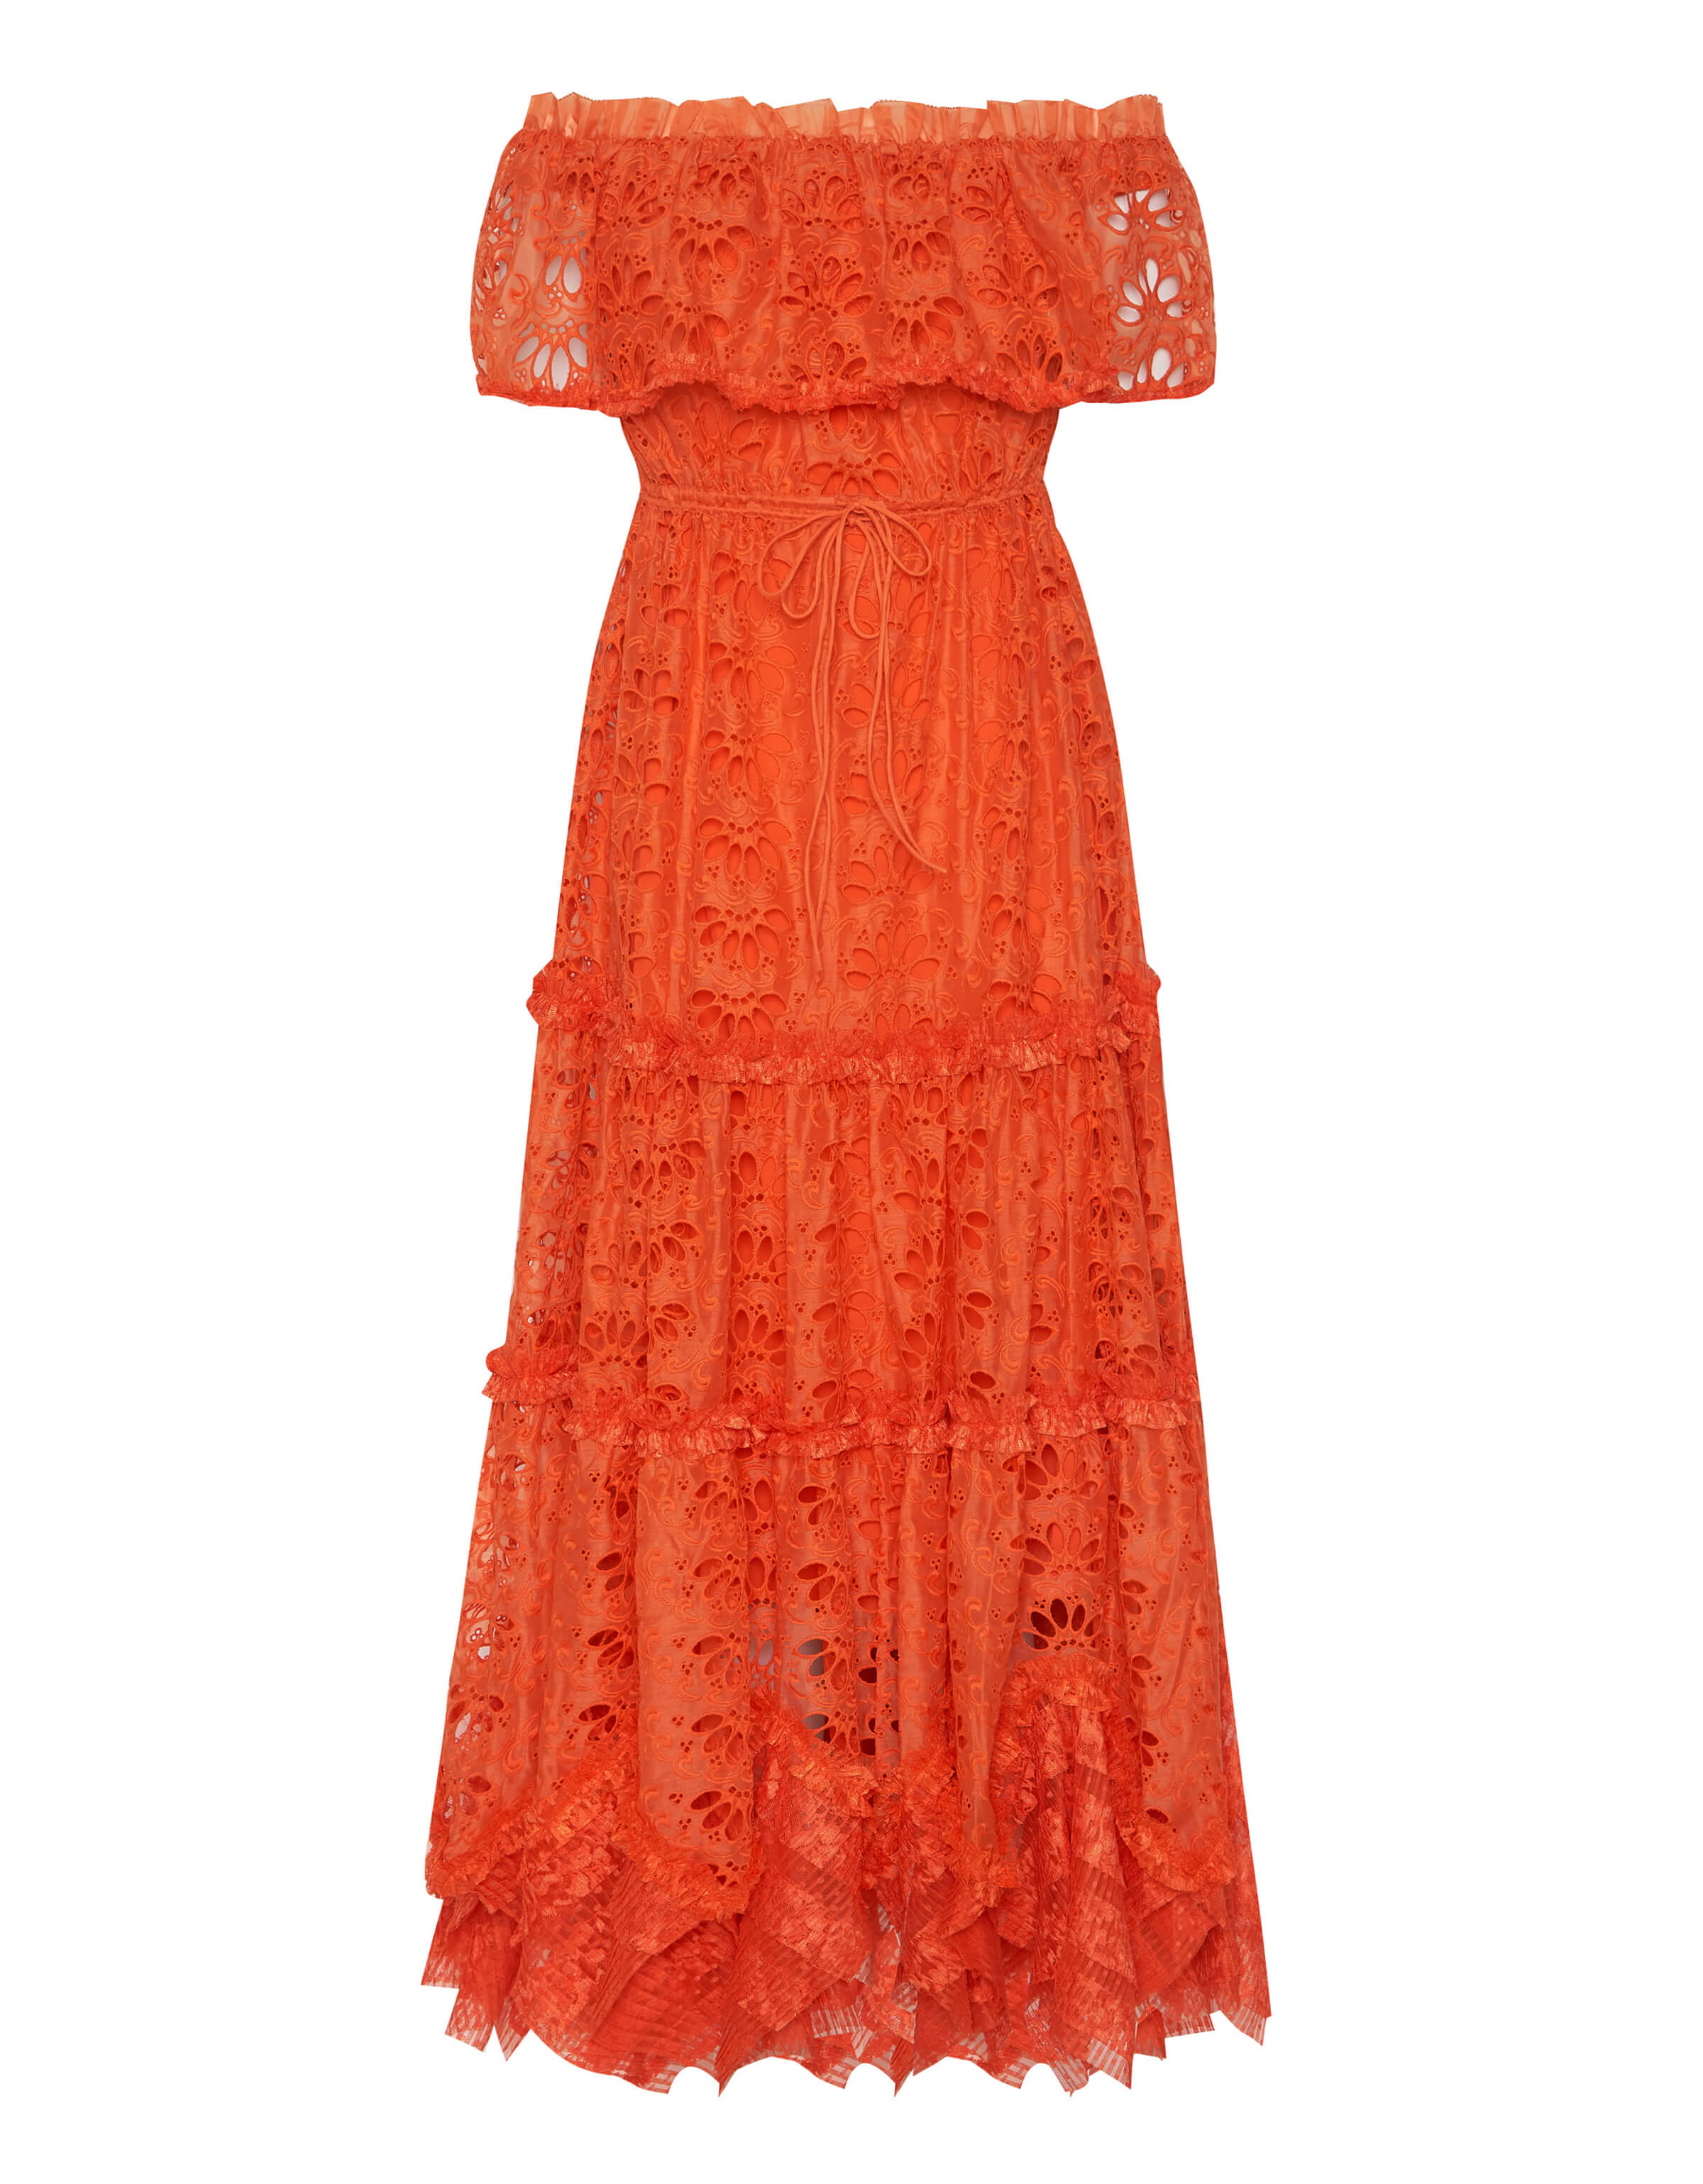 IXIAH - NOSTALGIC MAXI BURNT ORANGE